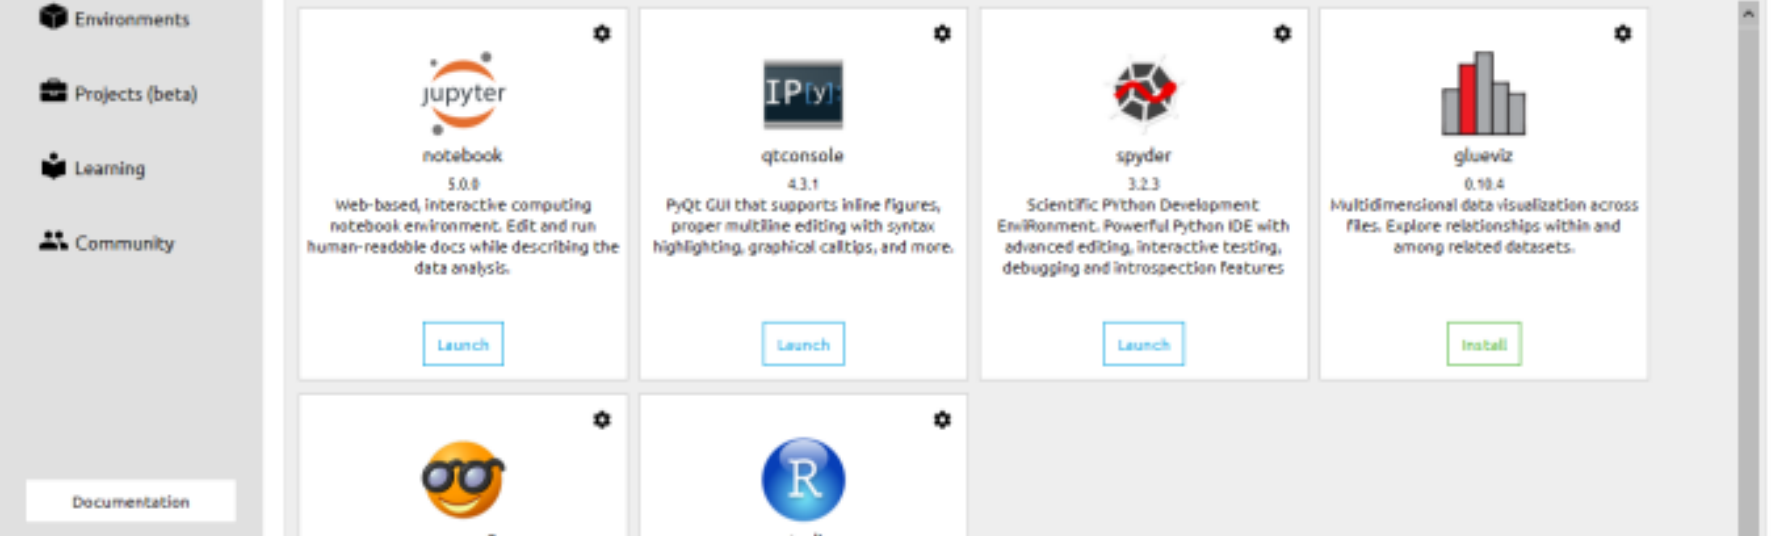 Anaconda,Jupyter,Spyder — Things You Need To Know